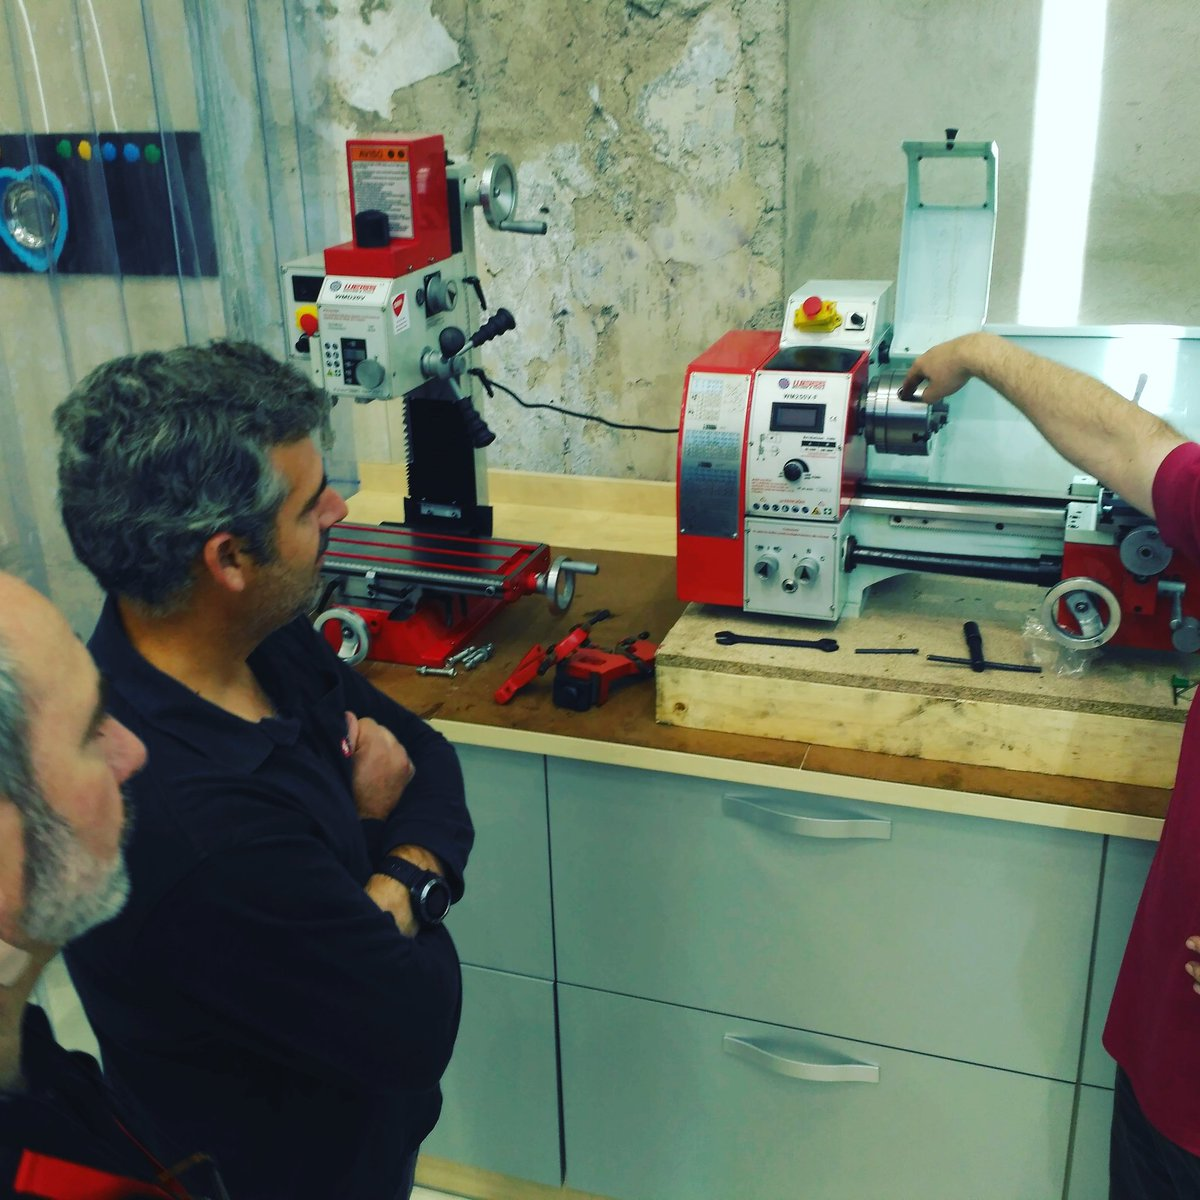 Learning about #lathe and #milling #machine @RemolacHackLAB  #fablab #makerspace #cnc #weiss #mecanization #metal #design #creative #manual<br>http://pic.twitter.com/p712qk4Pdj